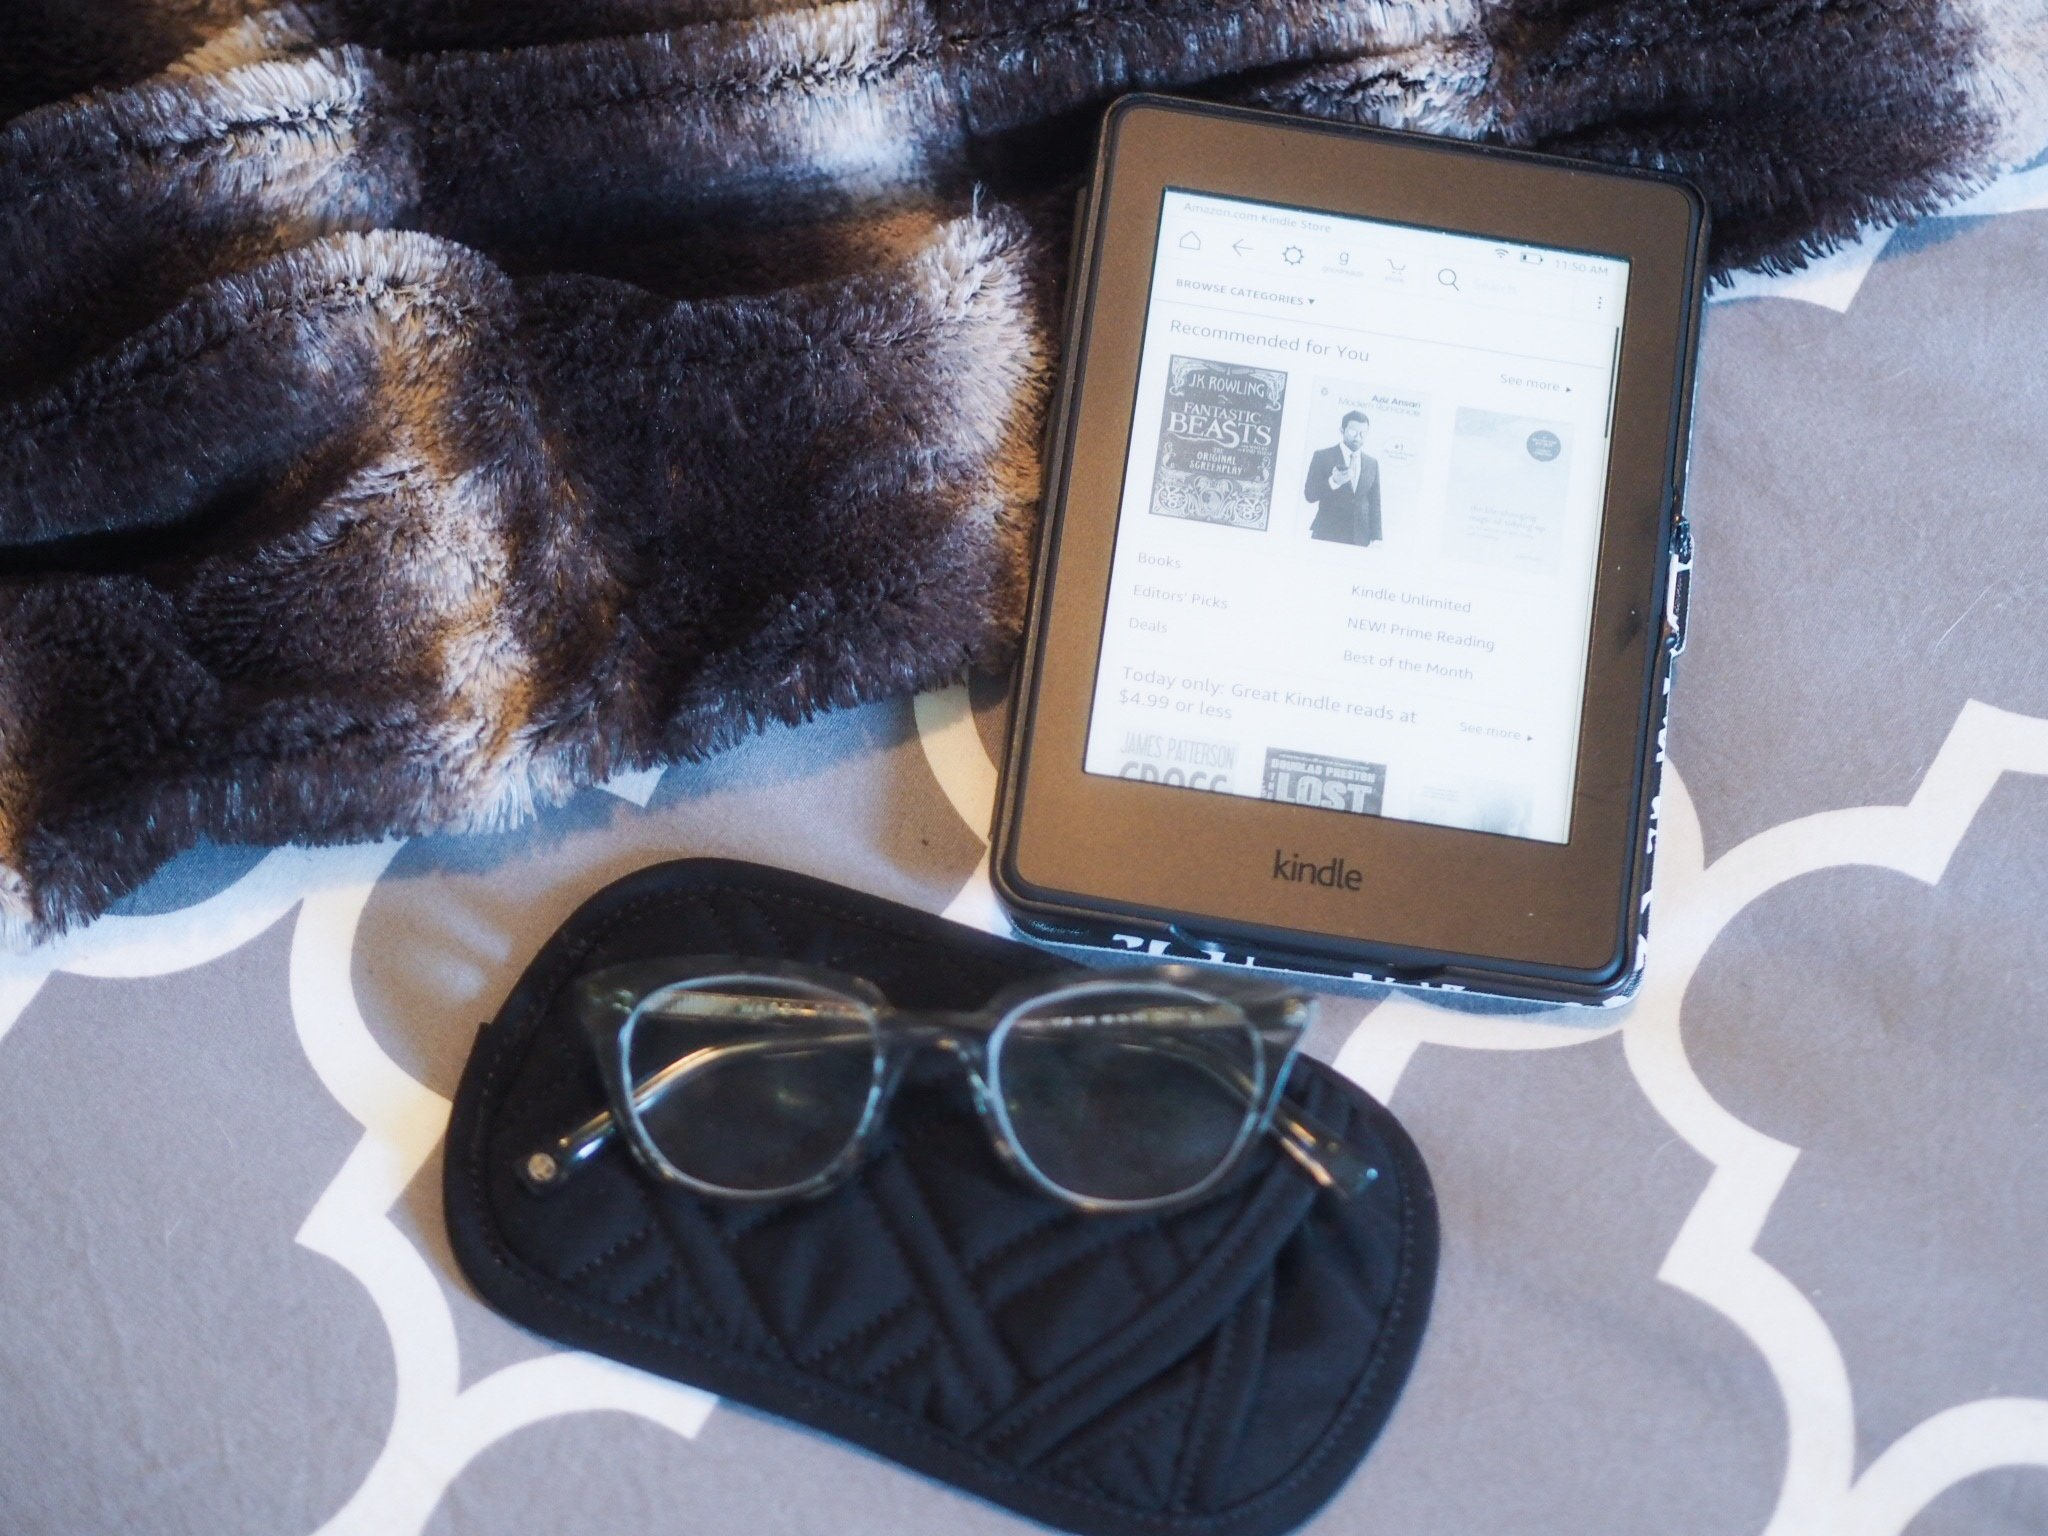 Kindle books for inspiration, entertainment, and entrepreneurs!